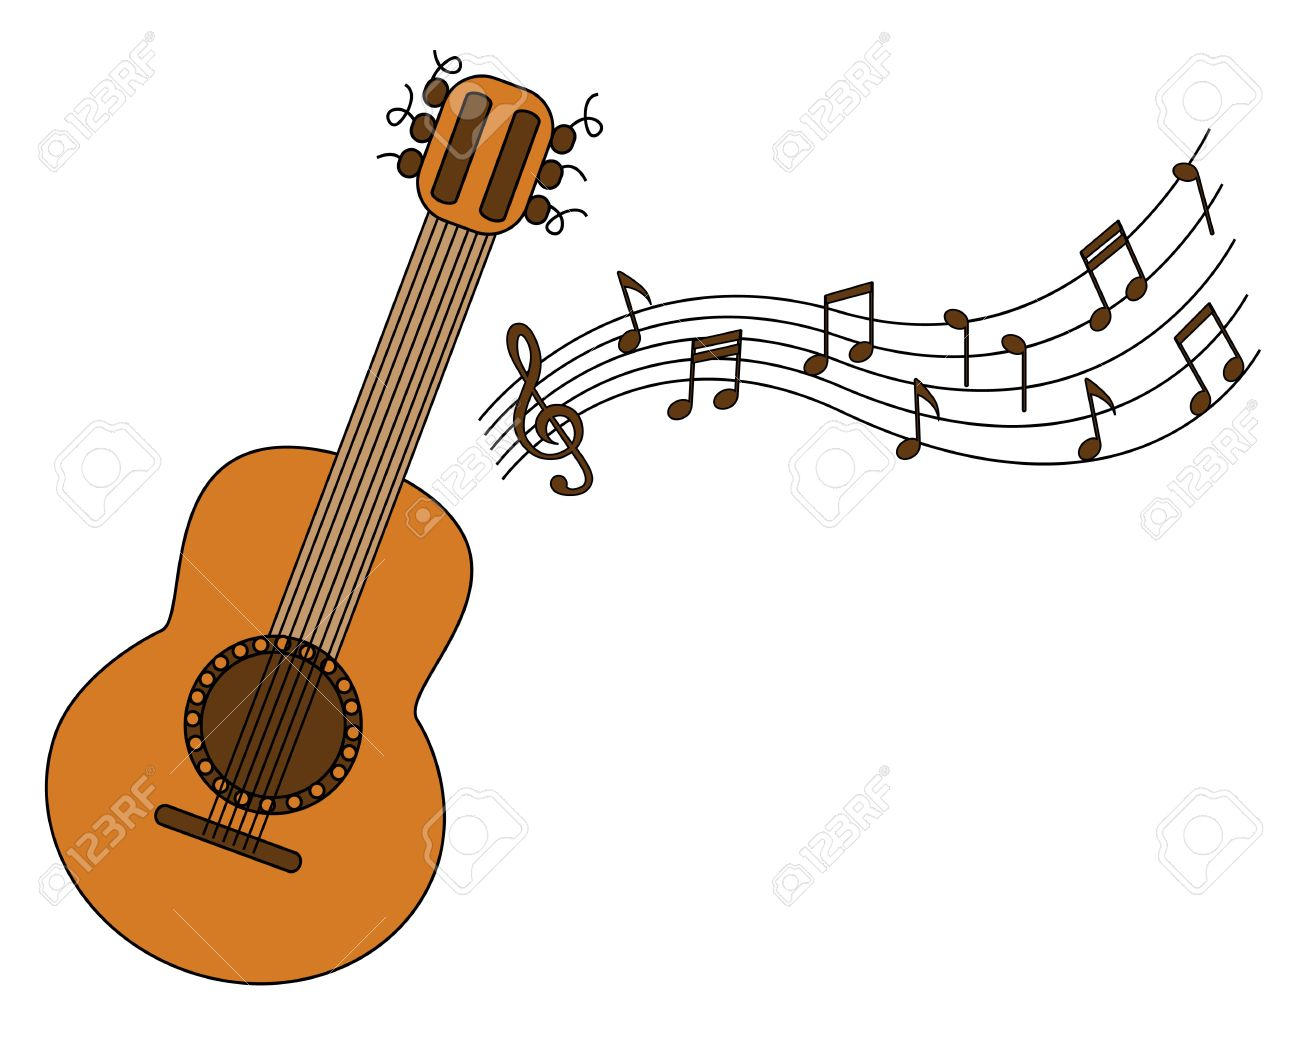 Cartoon Acoustic Guitar And Sheet Music On A White Background